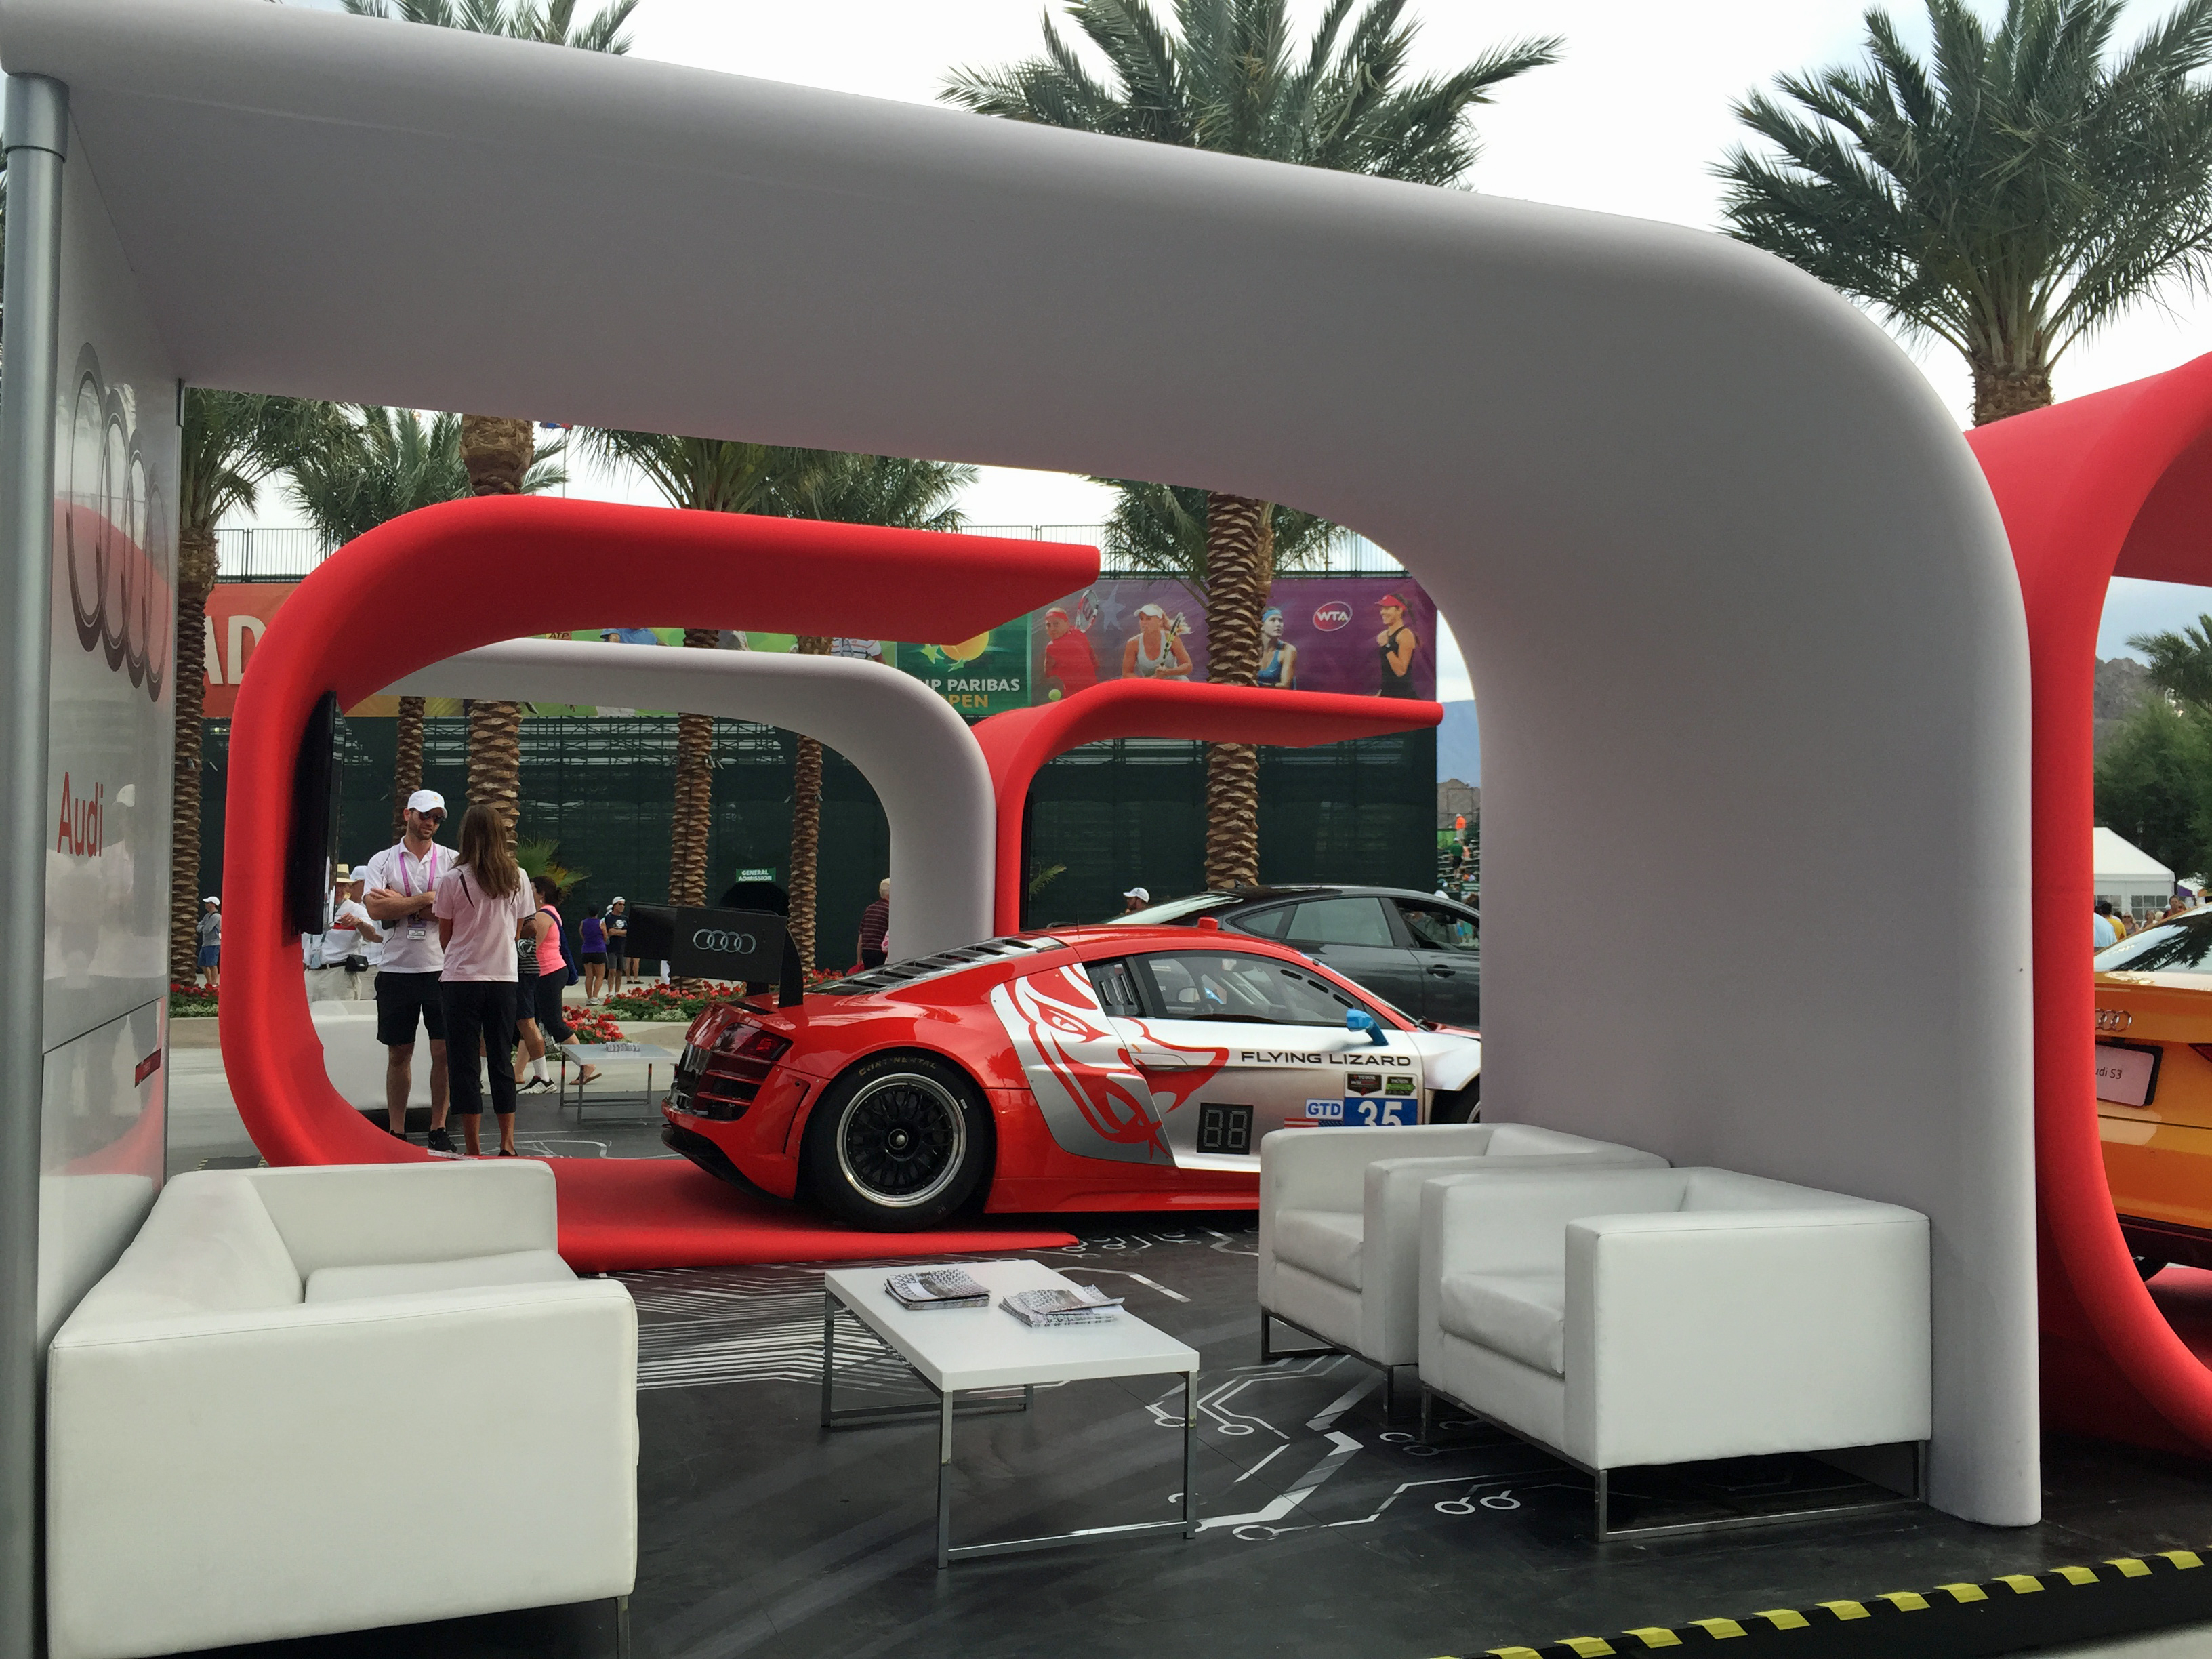 Audi was one of six new sponsors at this year's BNP Paribas Open in Indian Wells.